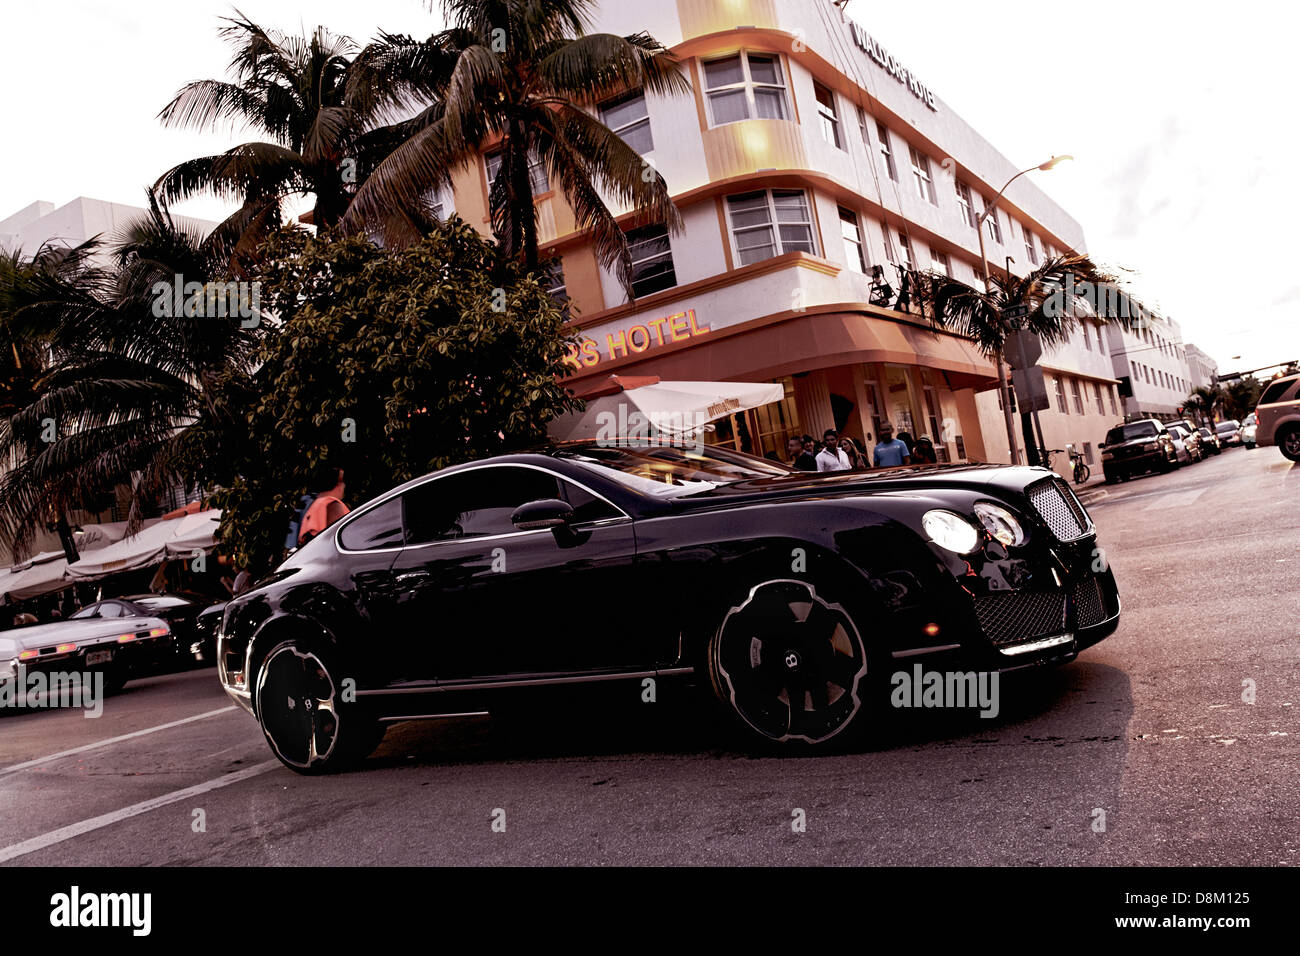 Luxury sports cars on Ocean Drive, Miami, Florida, USA - Stock Image